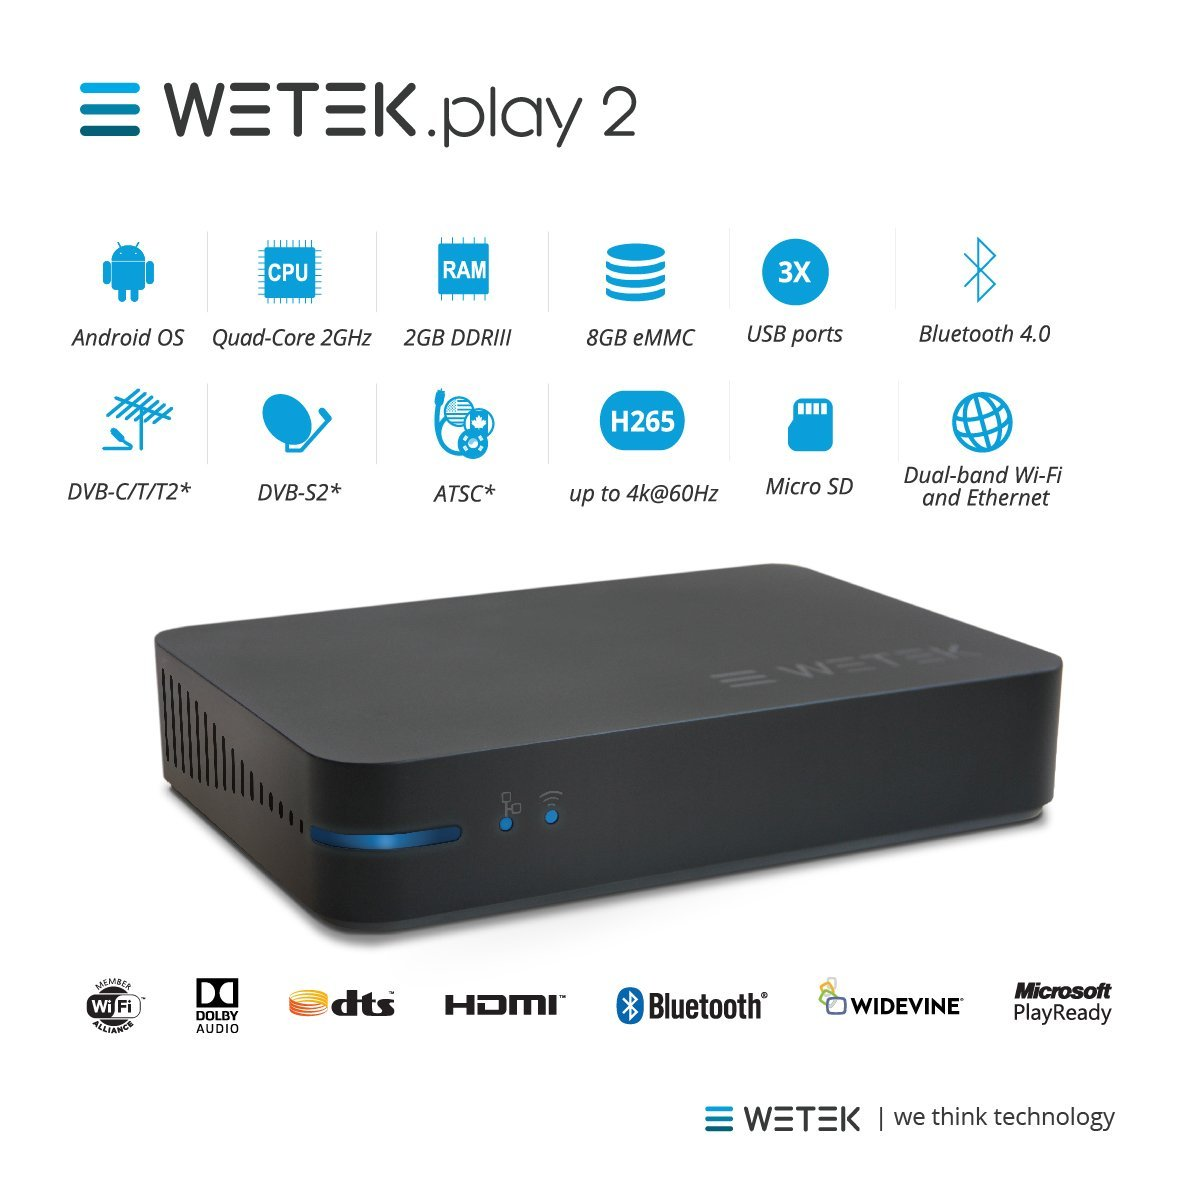 WeTek play 2